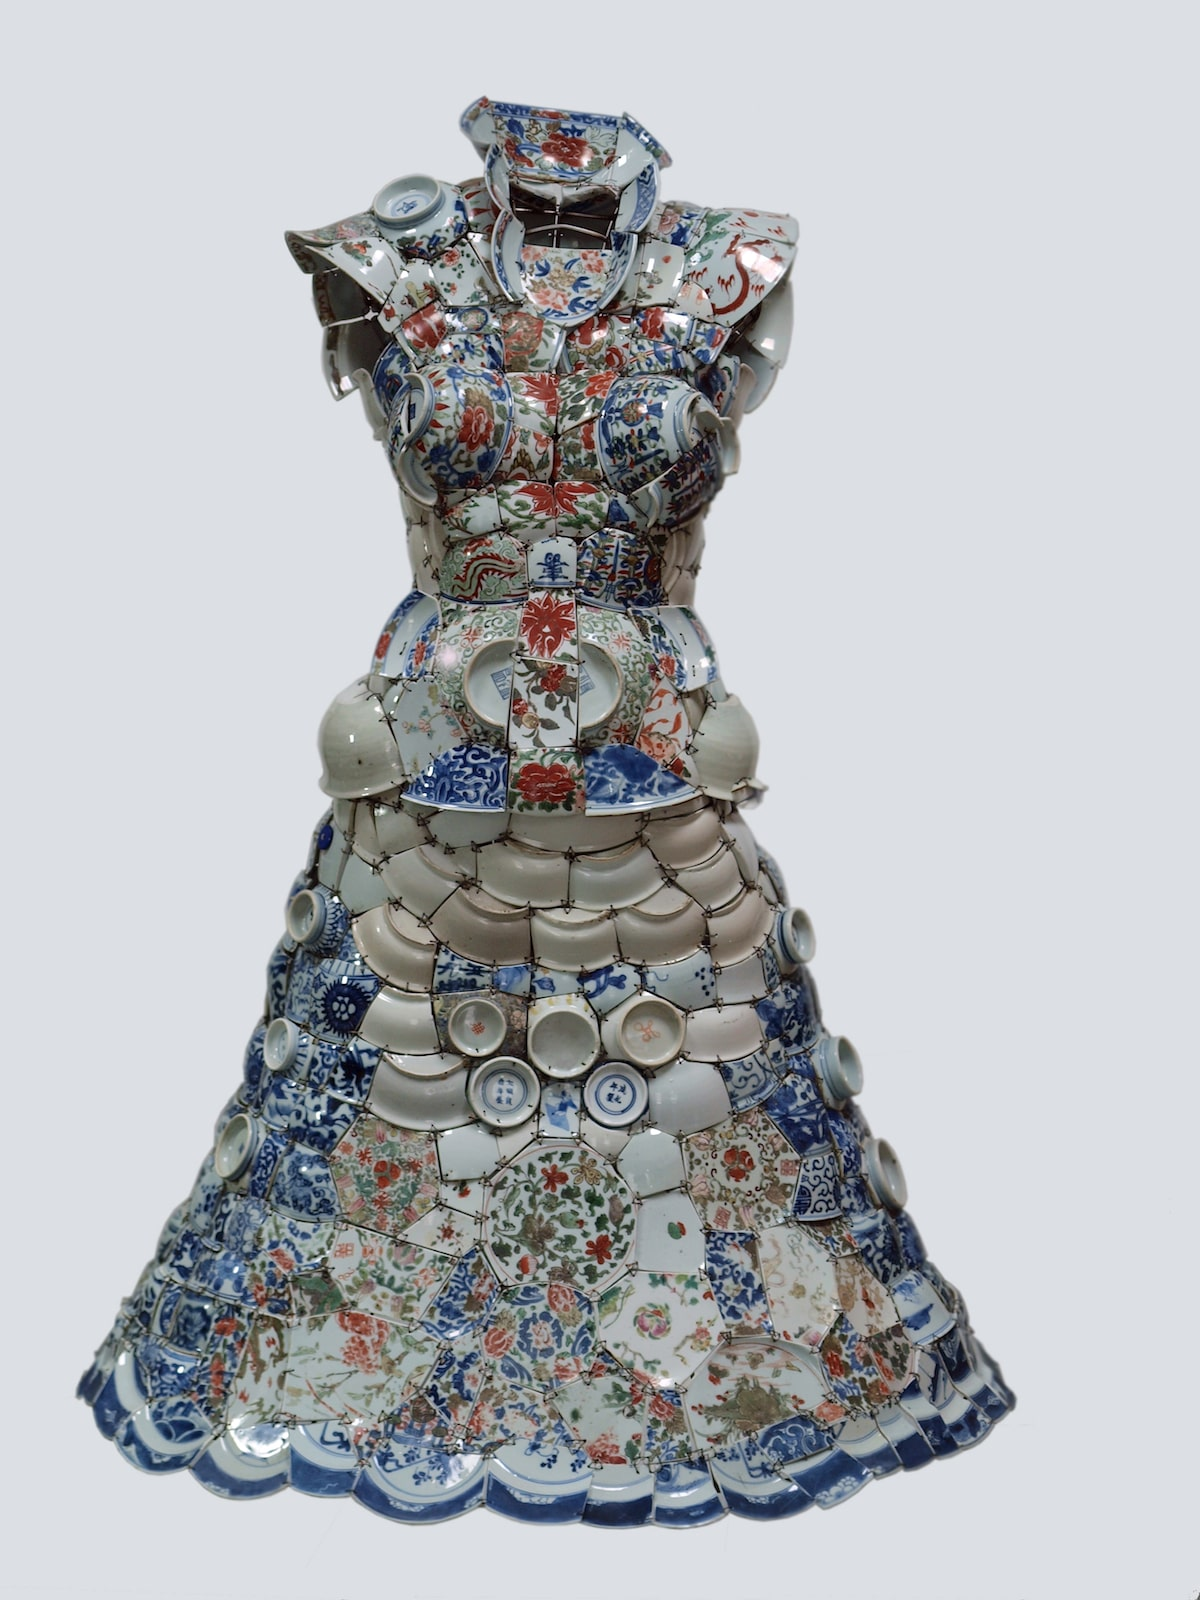 Dress Made of Porcelain by Li Xiaofeng